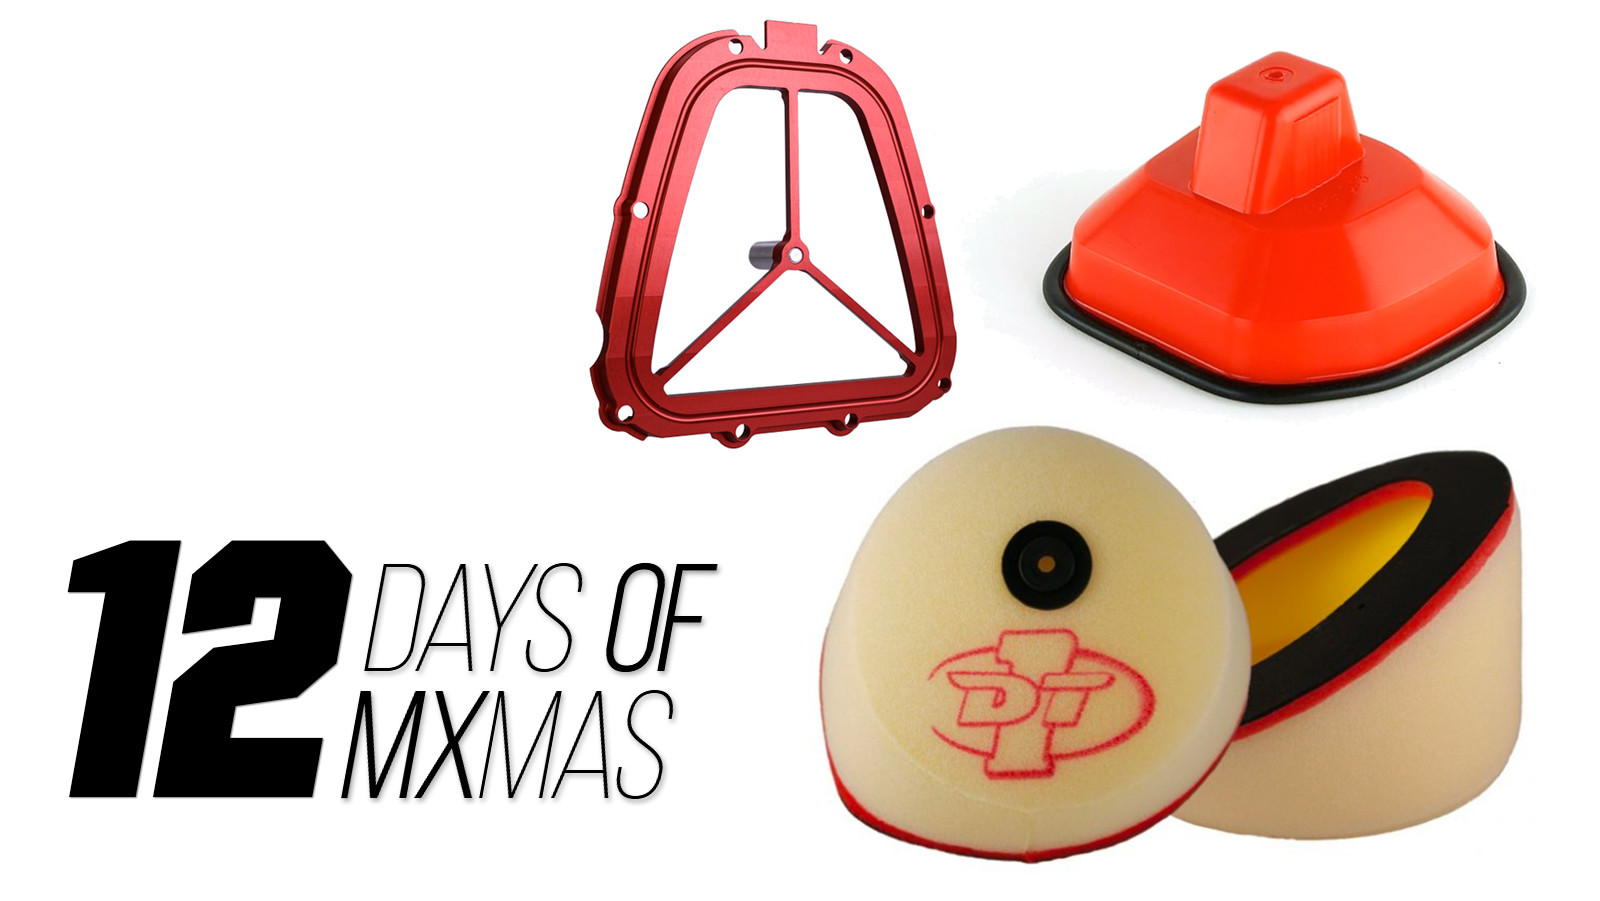 12 Days of MXmas: DT-1